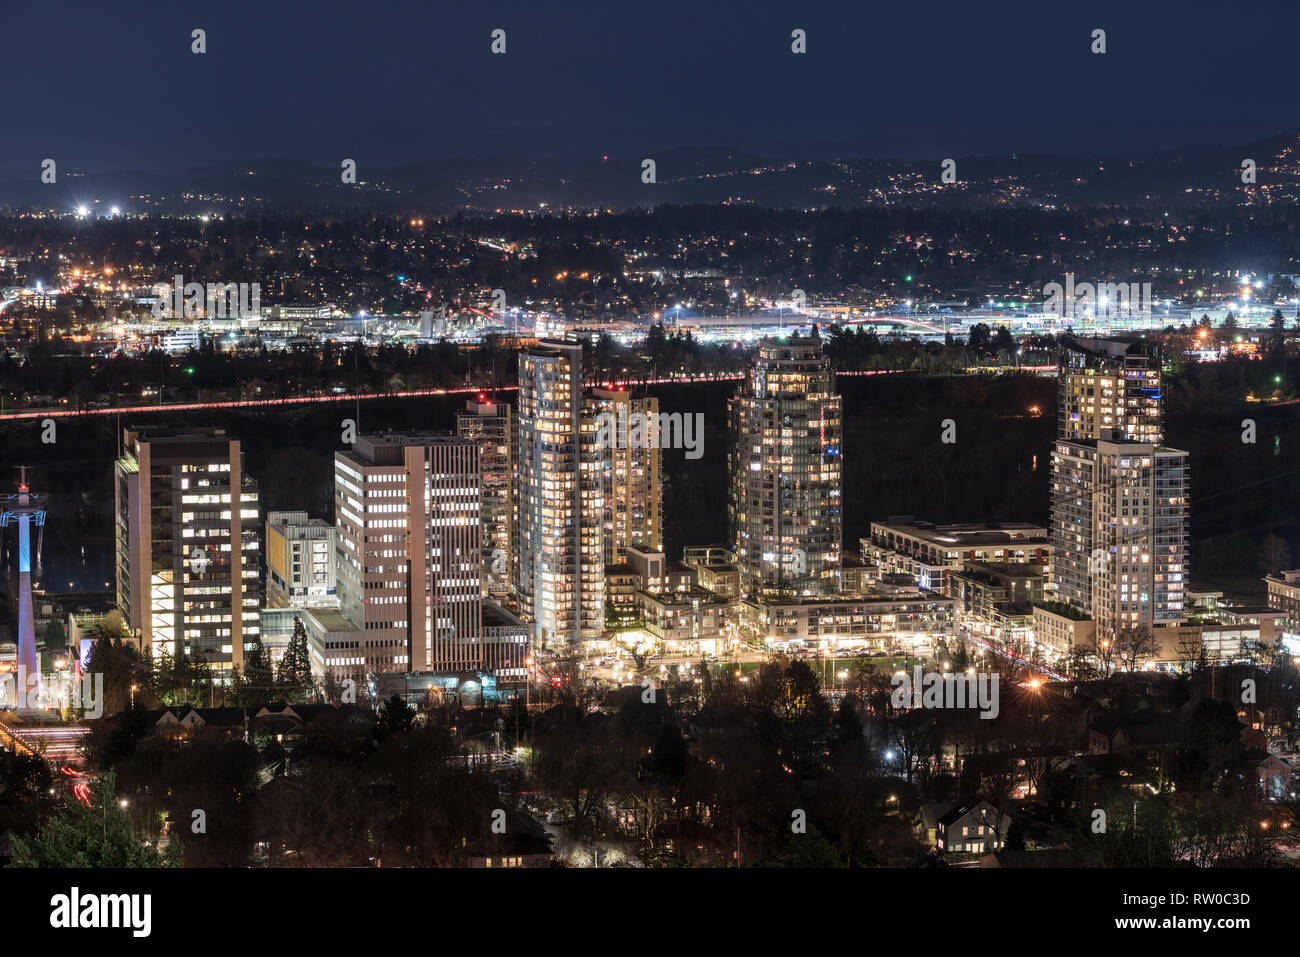 Portland Oregon's South Waterfront district at night. - Stock Image